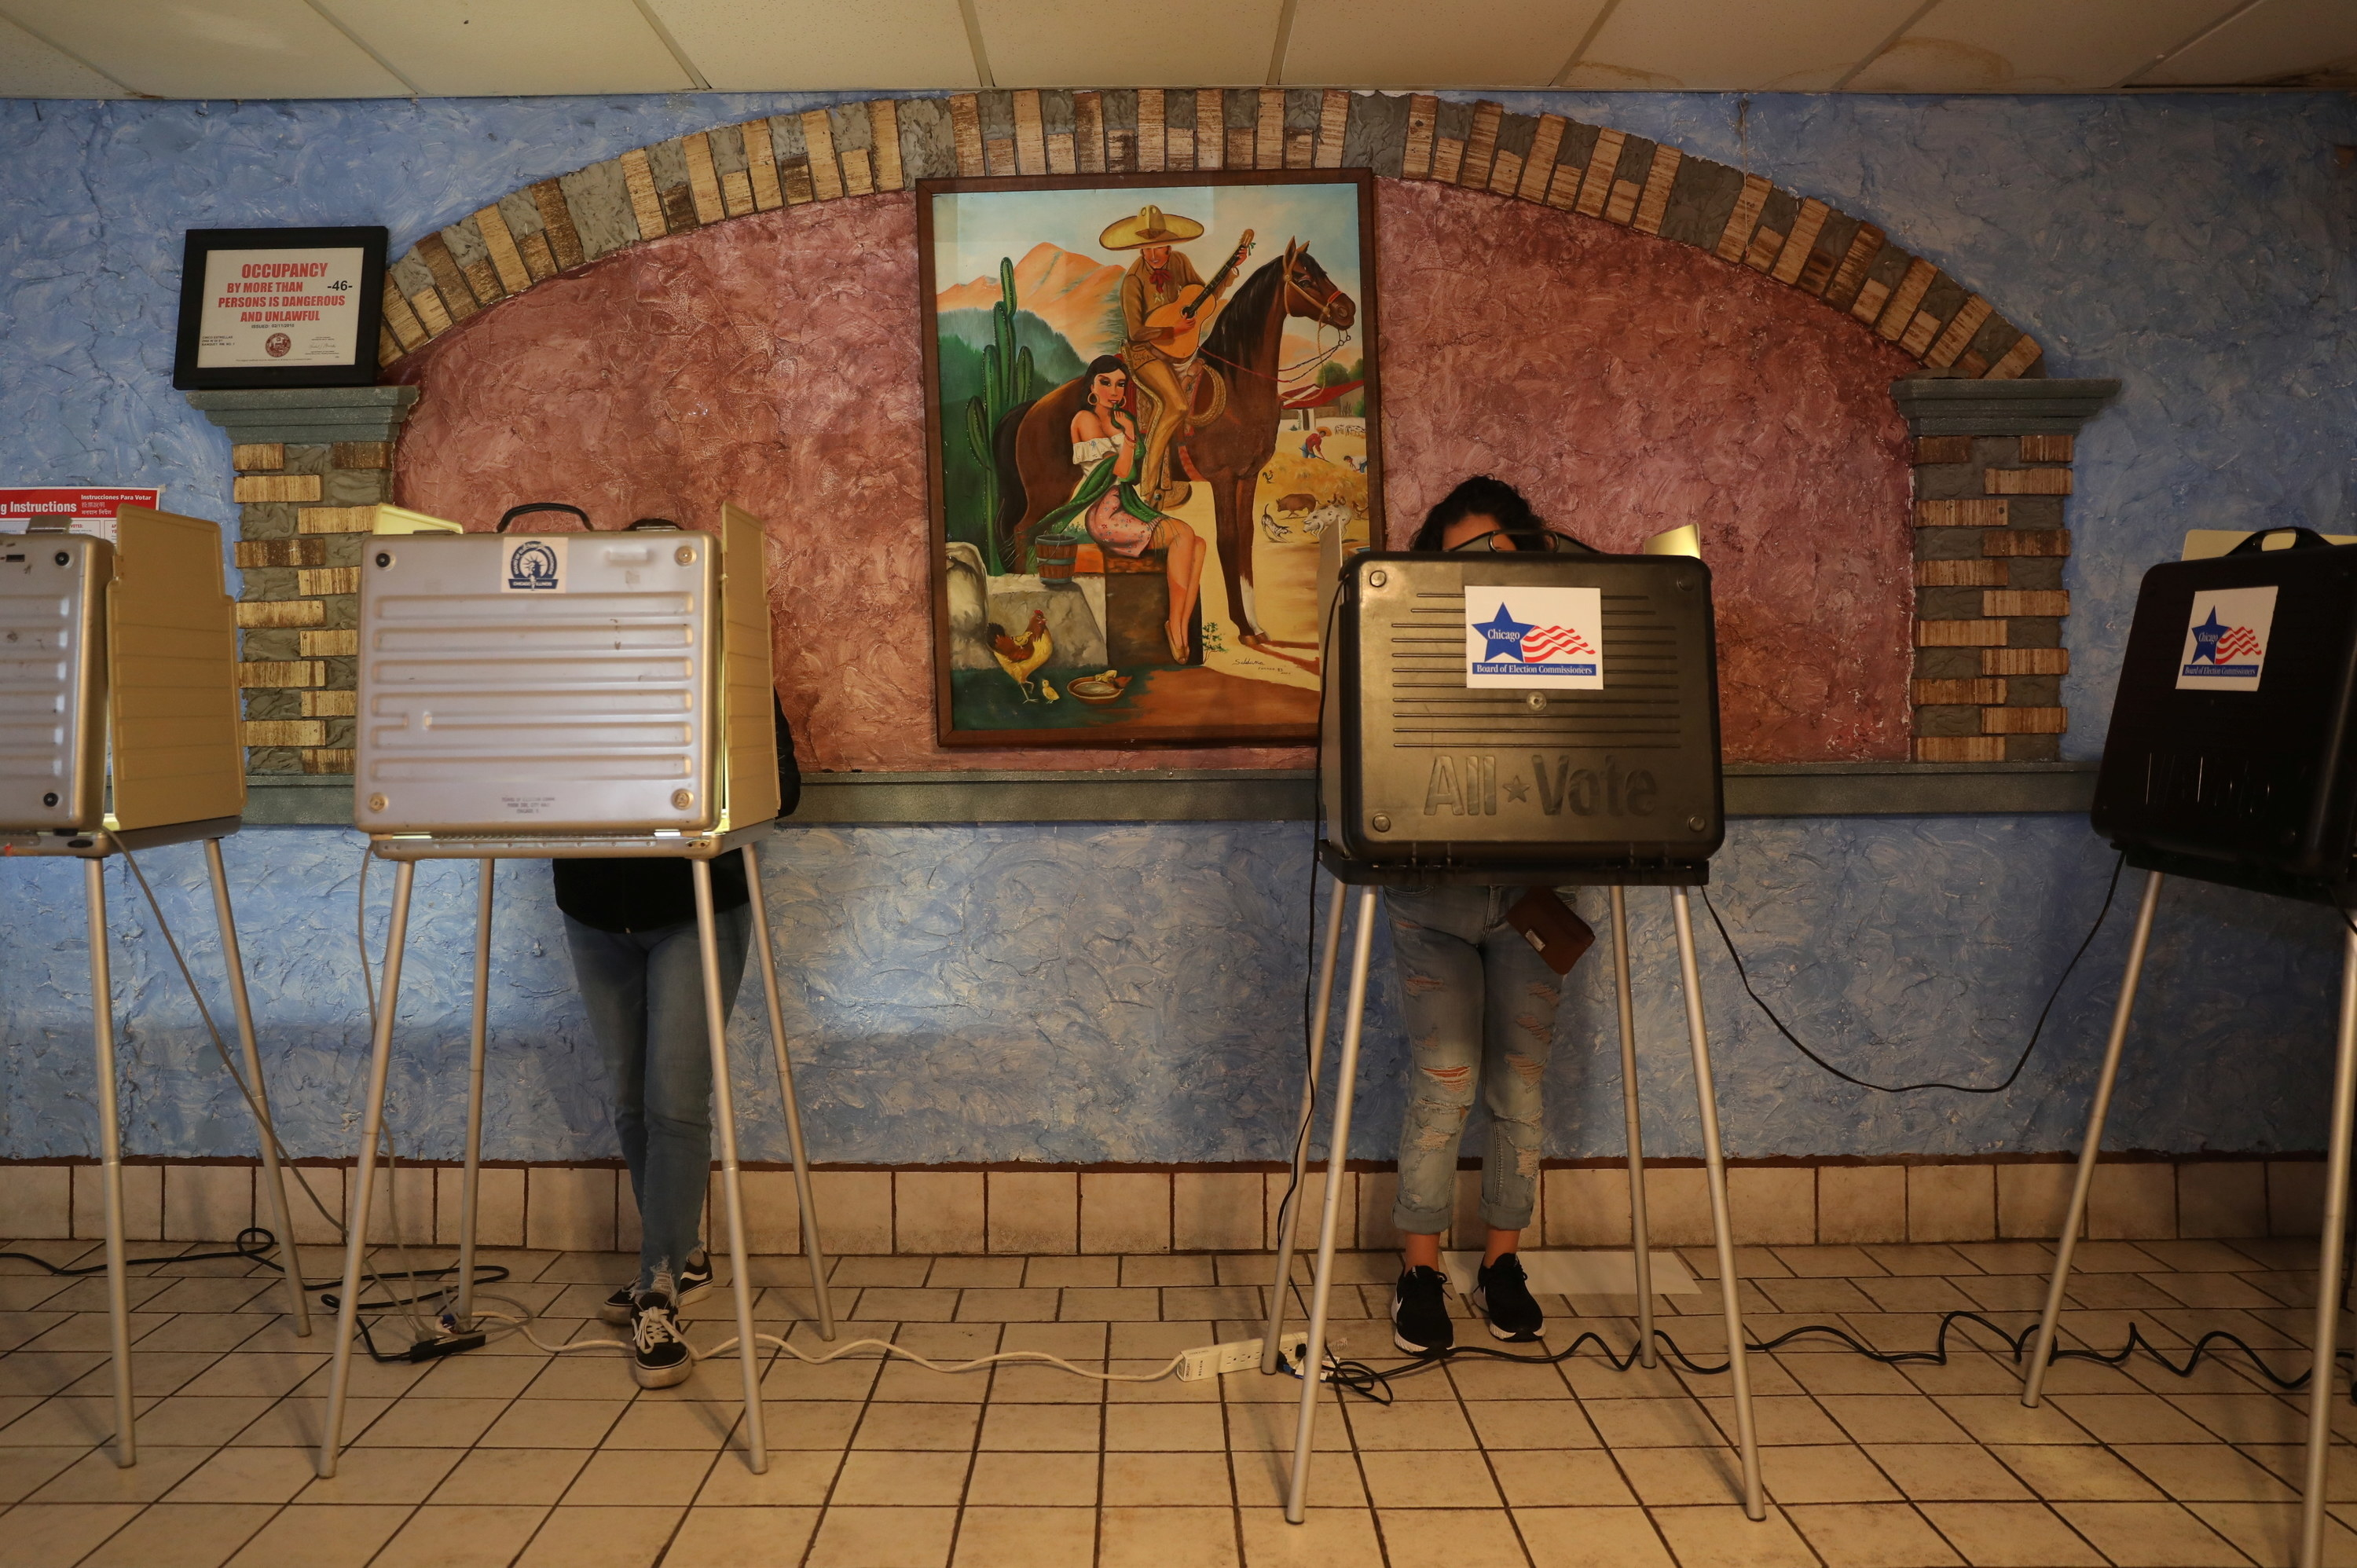 Two people at ballot stations under a mural in a Mexican restaurant.